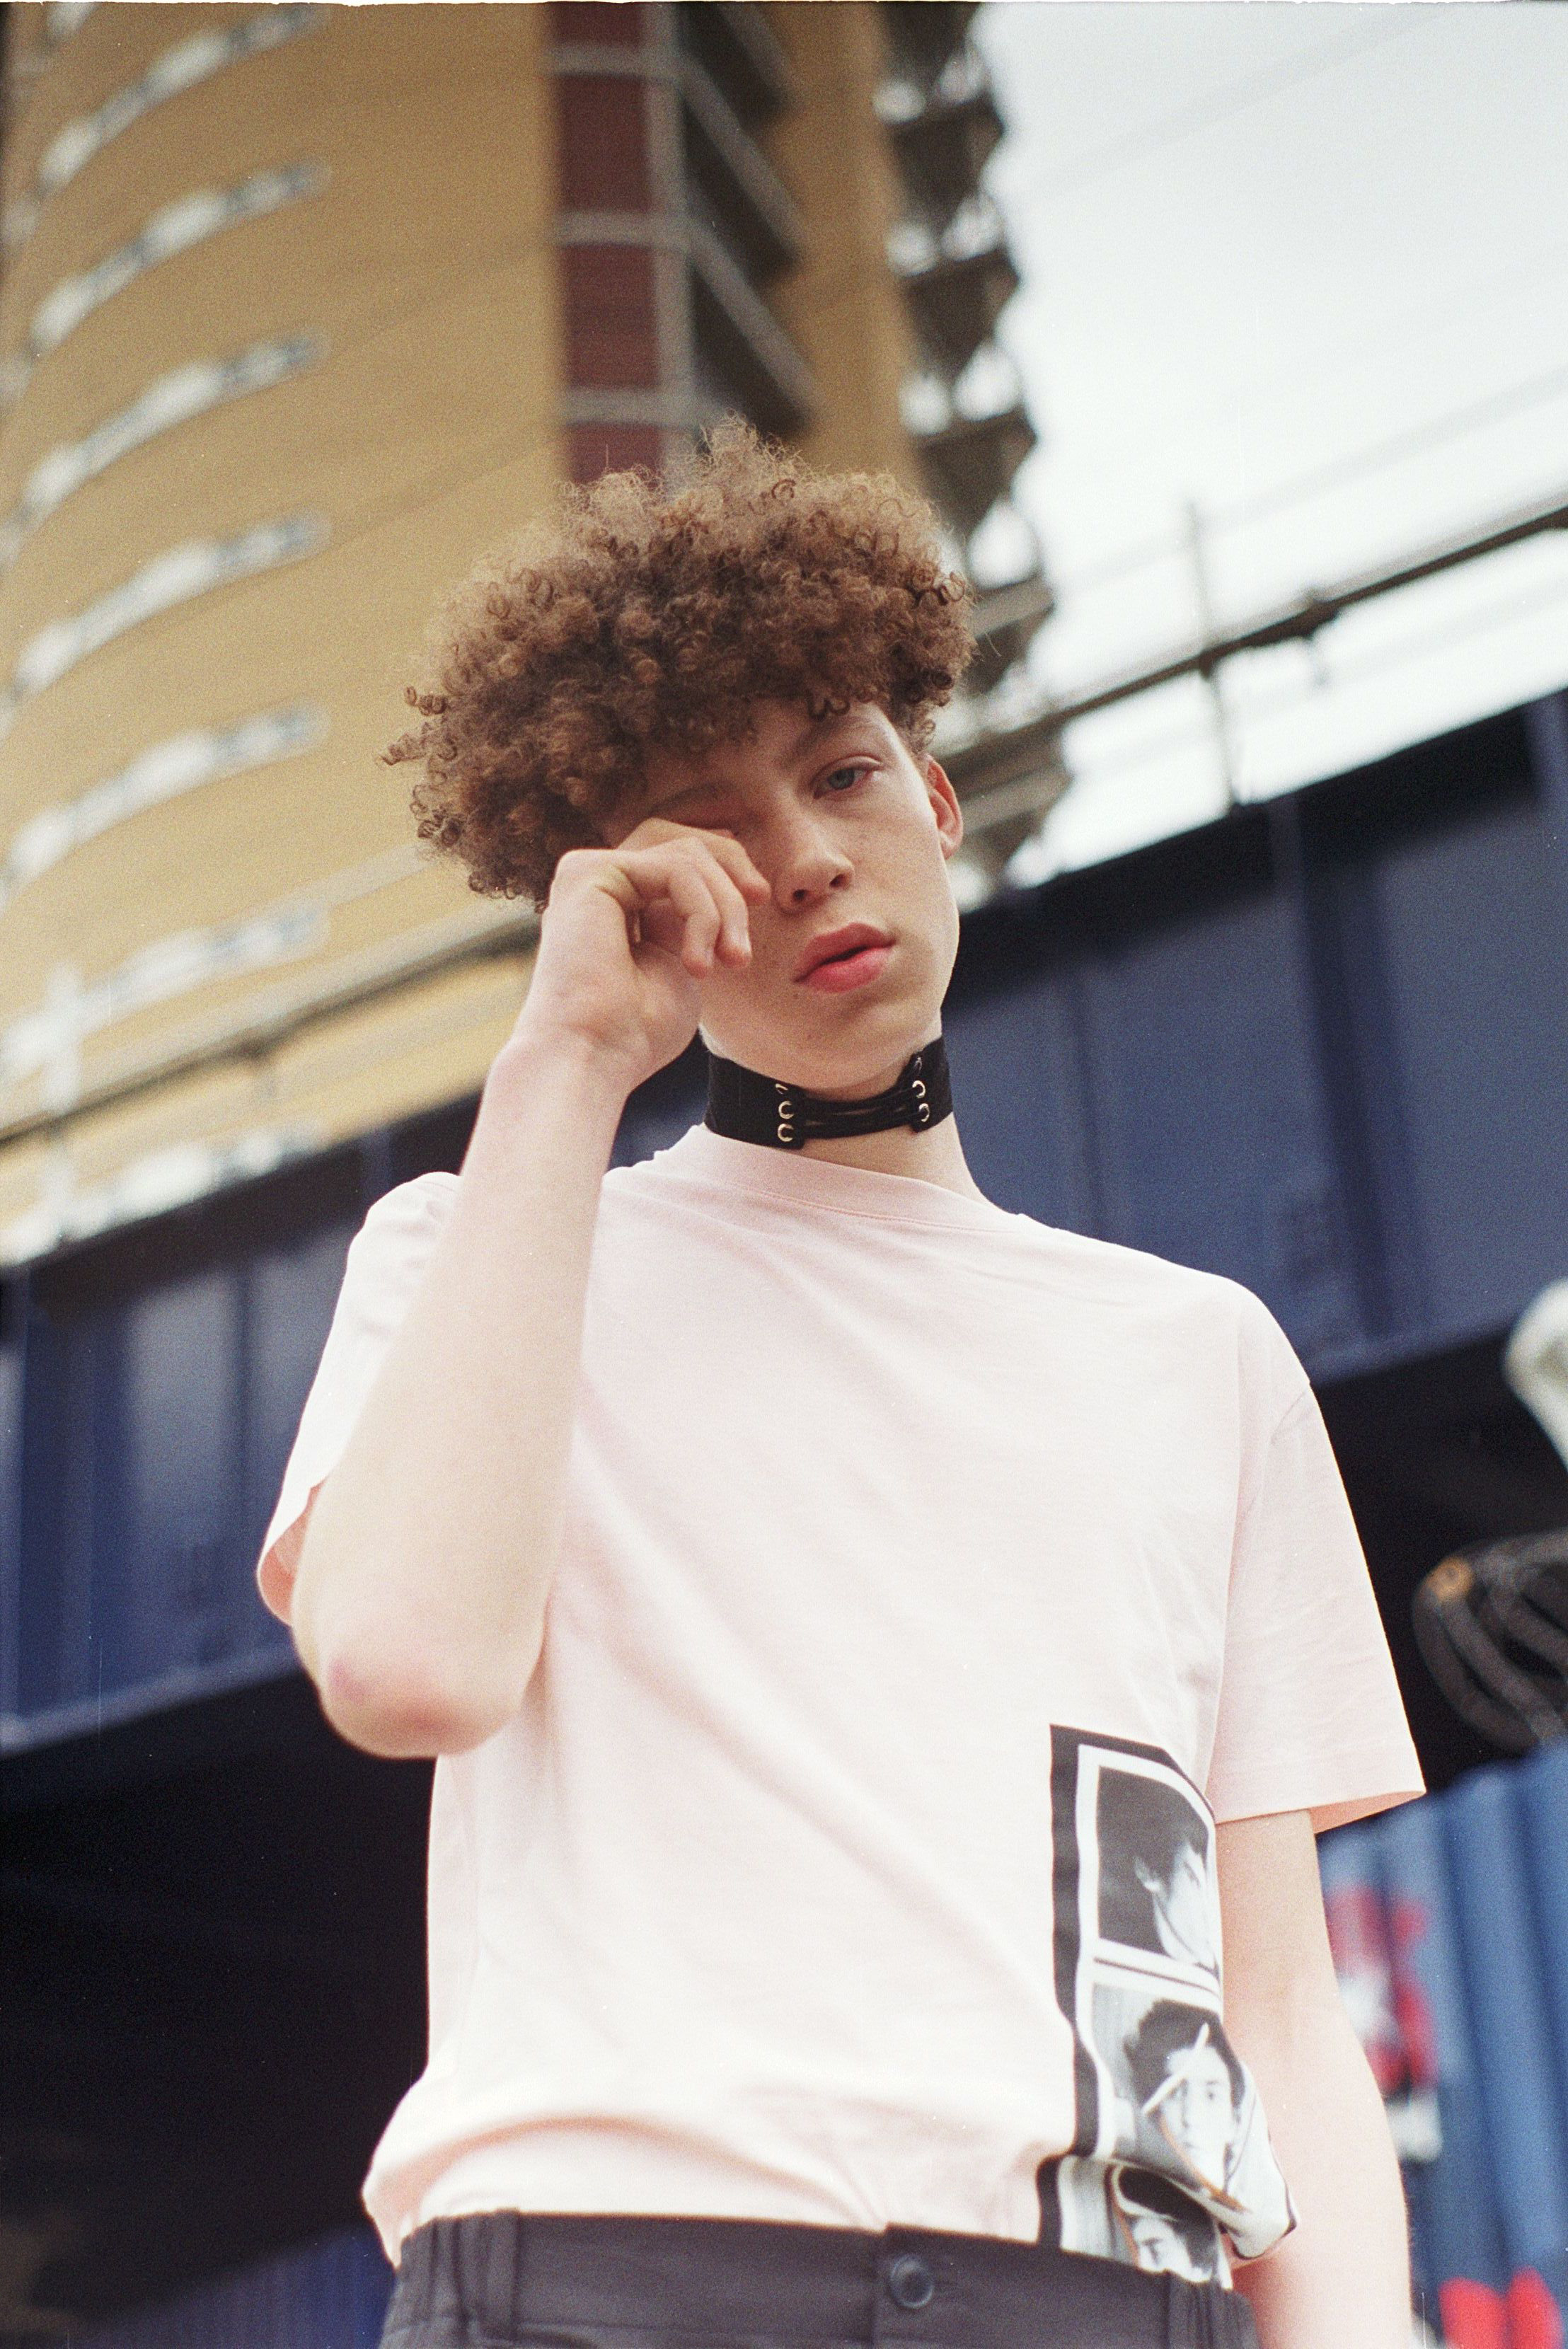 INDIE Magazine - 'Luis, the cool kid of London Fields'   Art direction, Styling & Casting  CRISTINA CHIRILA  Model  LUIS @ Named Model Management Hair & Make-up  REBECCA MATTSSON using  Delilah Cosmetics